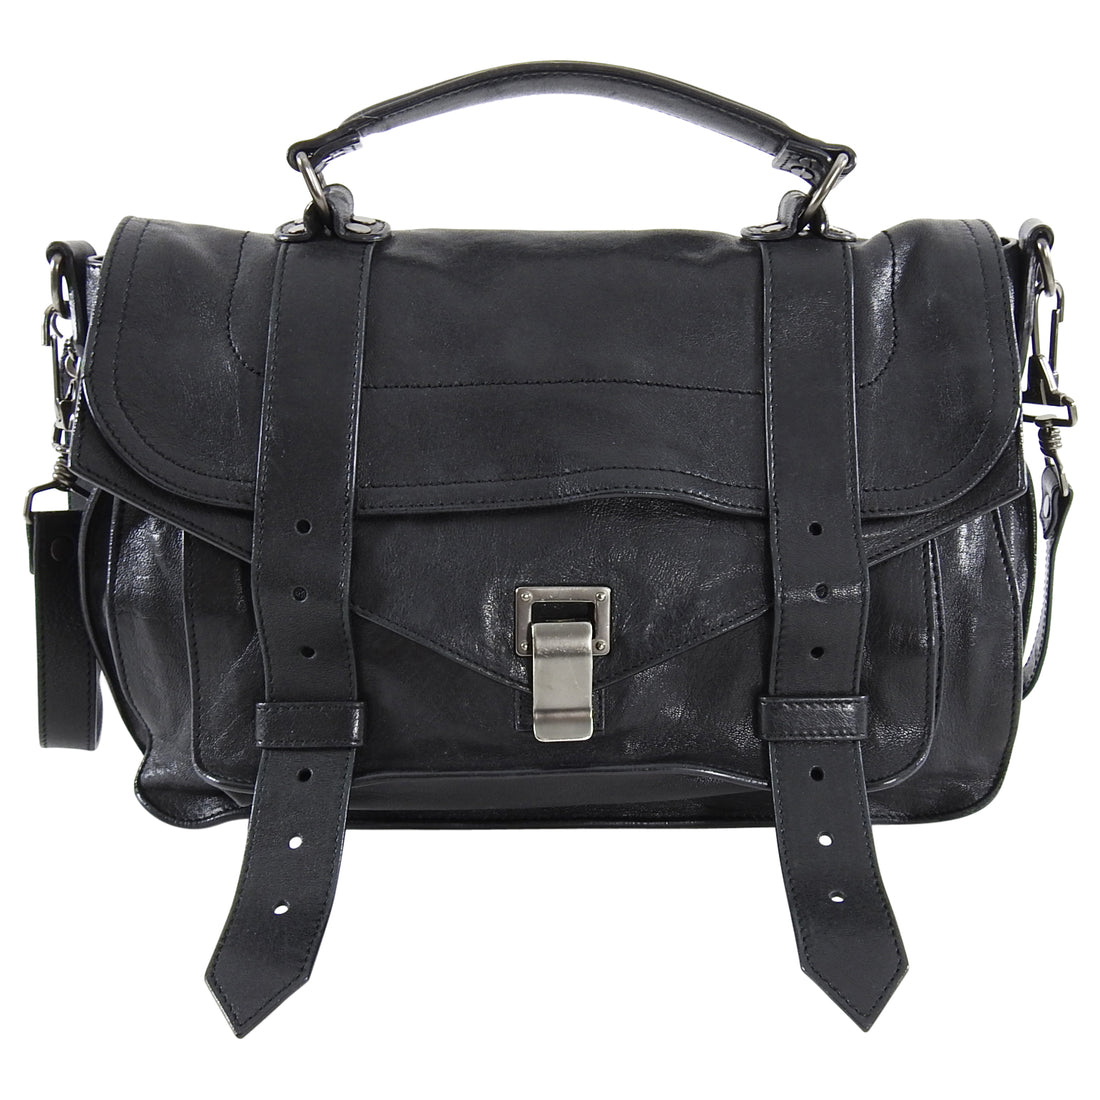 Proenza Schouler PS1 Medium Black Leather Bag